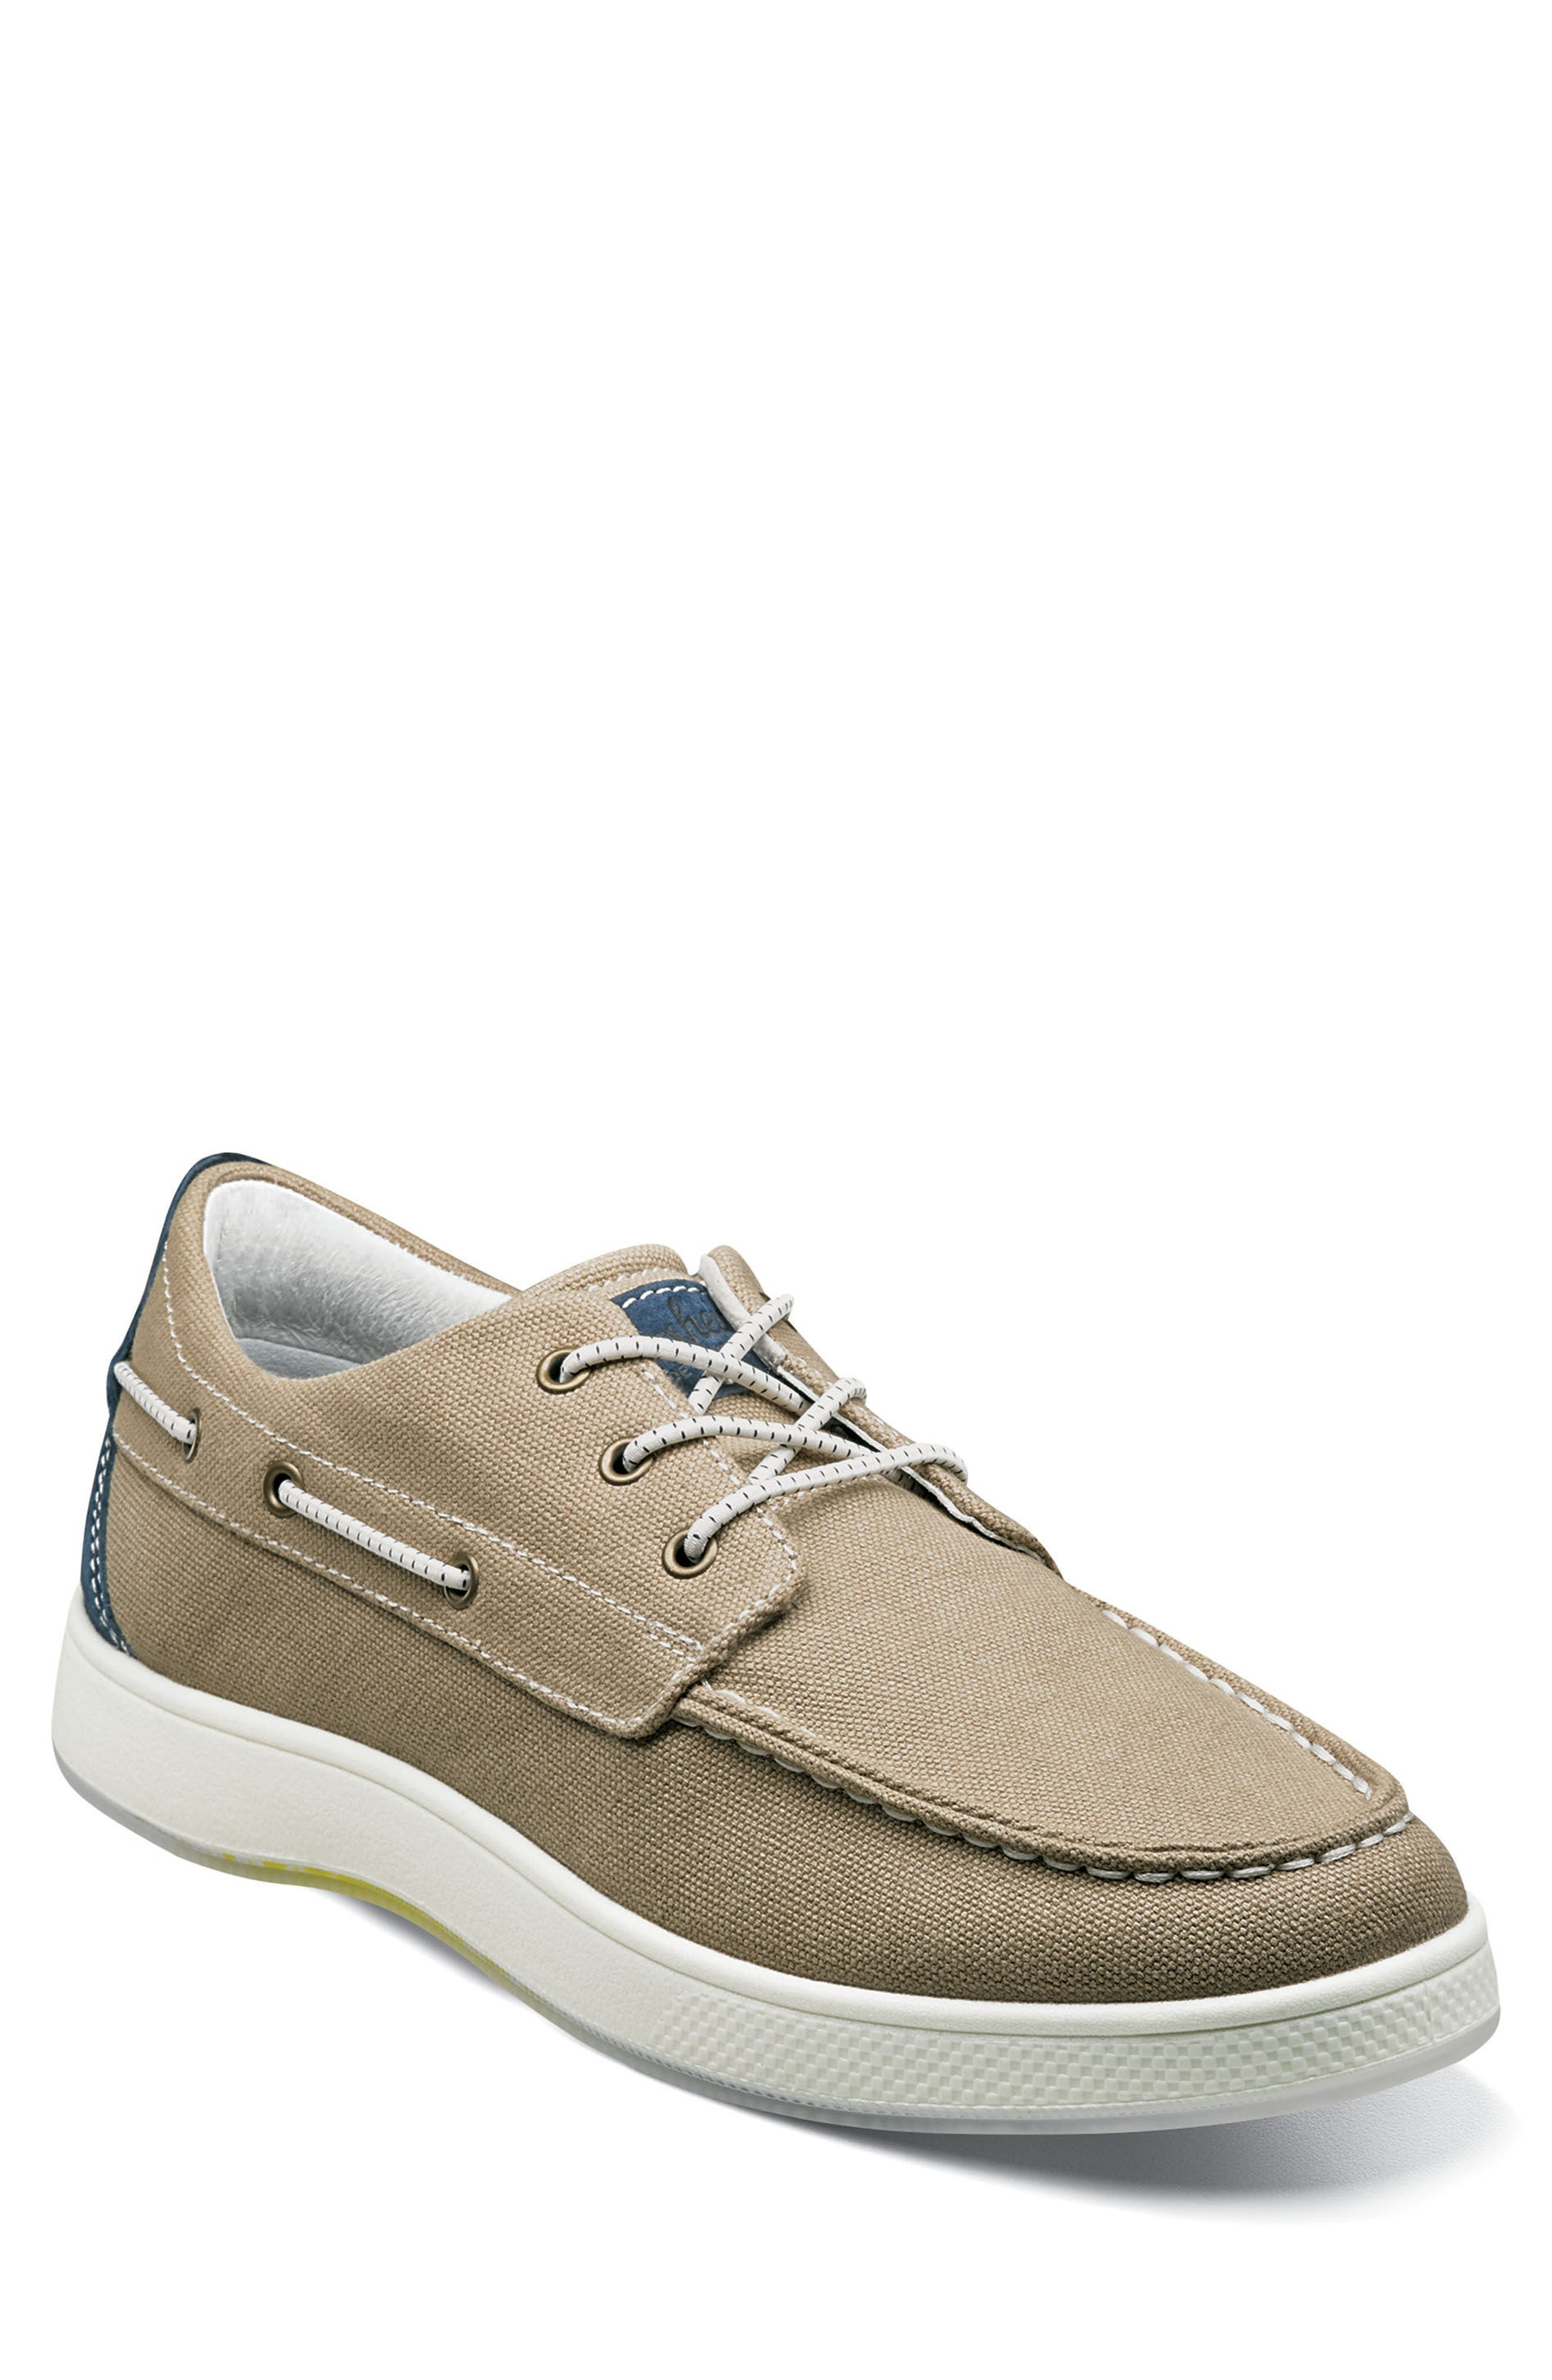 FLORSHEIM Edge Boat Shoe, Main, color, KHAKI CANVAS